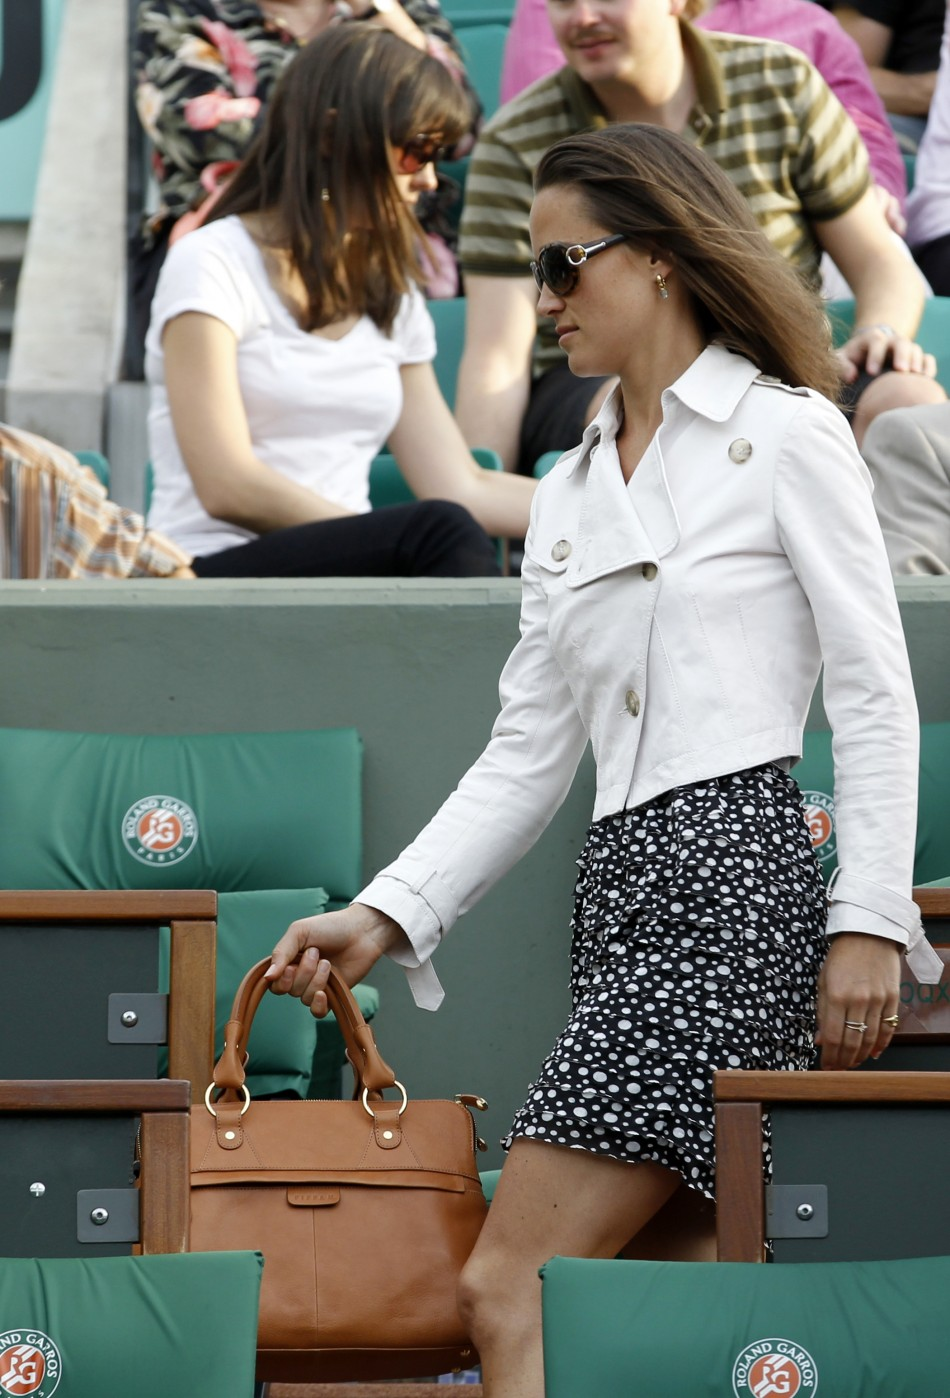 Pippa Middleton, sister of Catherine, Britain's Duchess of Cambridge, leaves the Philippe Chartrier central court during the French Open tennis tournament at the Roland Garros stadium in Paris May 30, 2011.